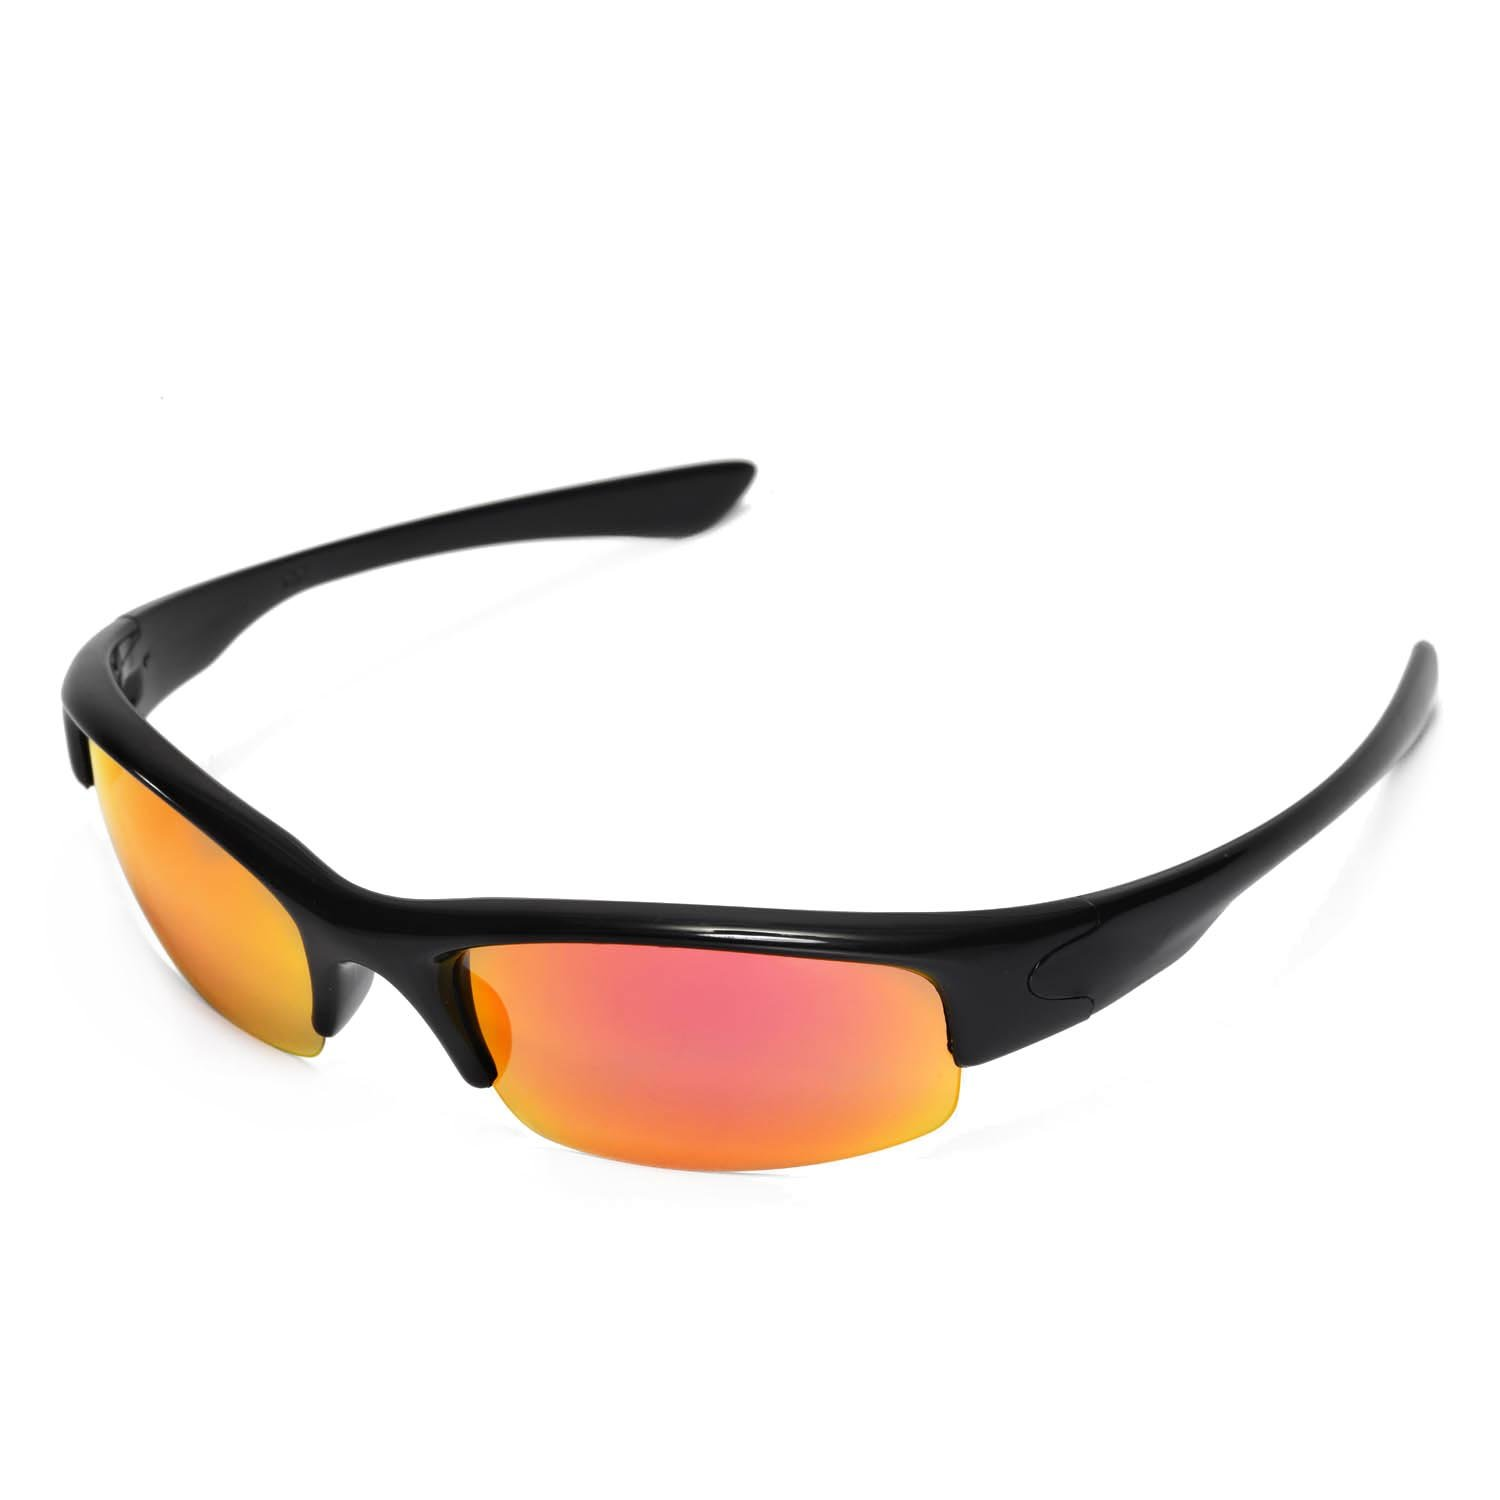 a75579e28d1 Walleva Replacement Lenses for Oakley Bottlecap Sunglasses -Multiple  Options Available (Fire Red Mirror Coated - Polarized) at Amazon Men s  Clothing store